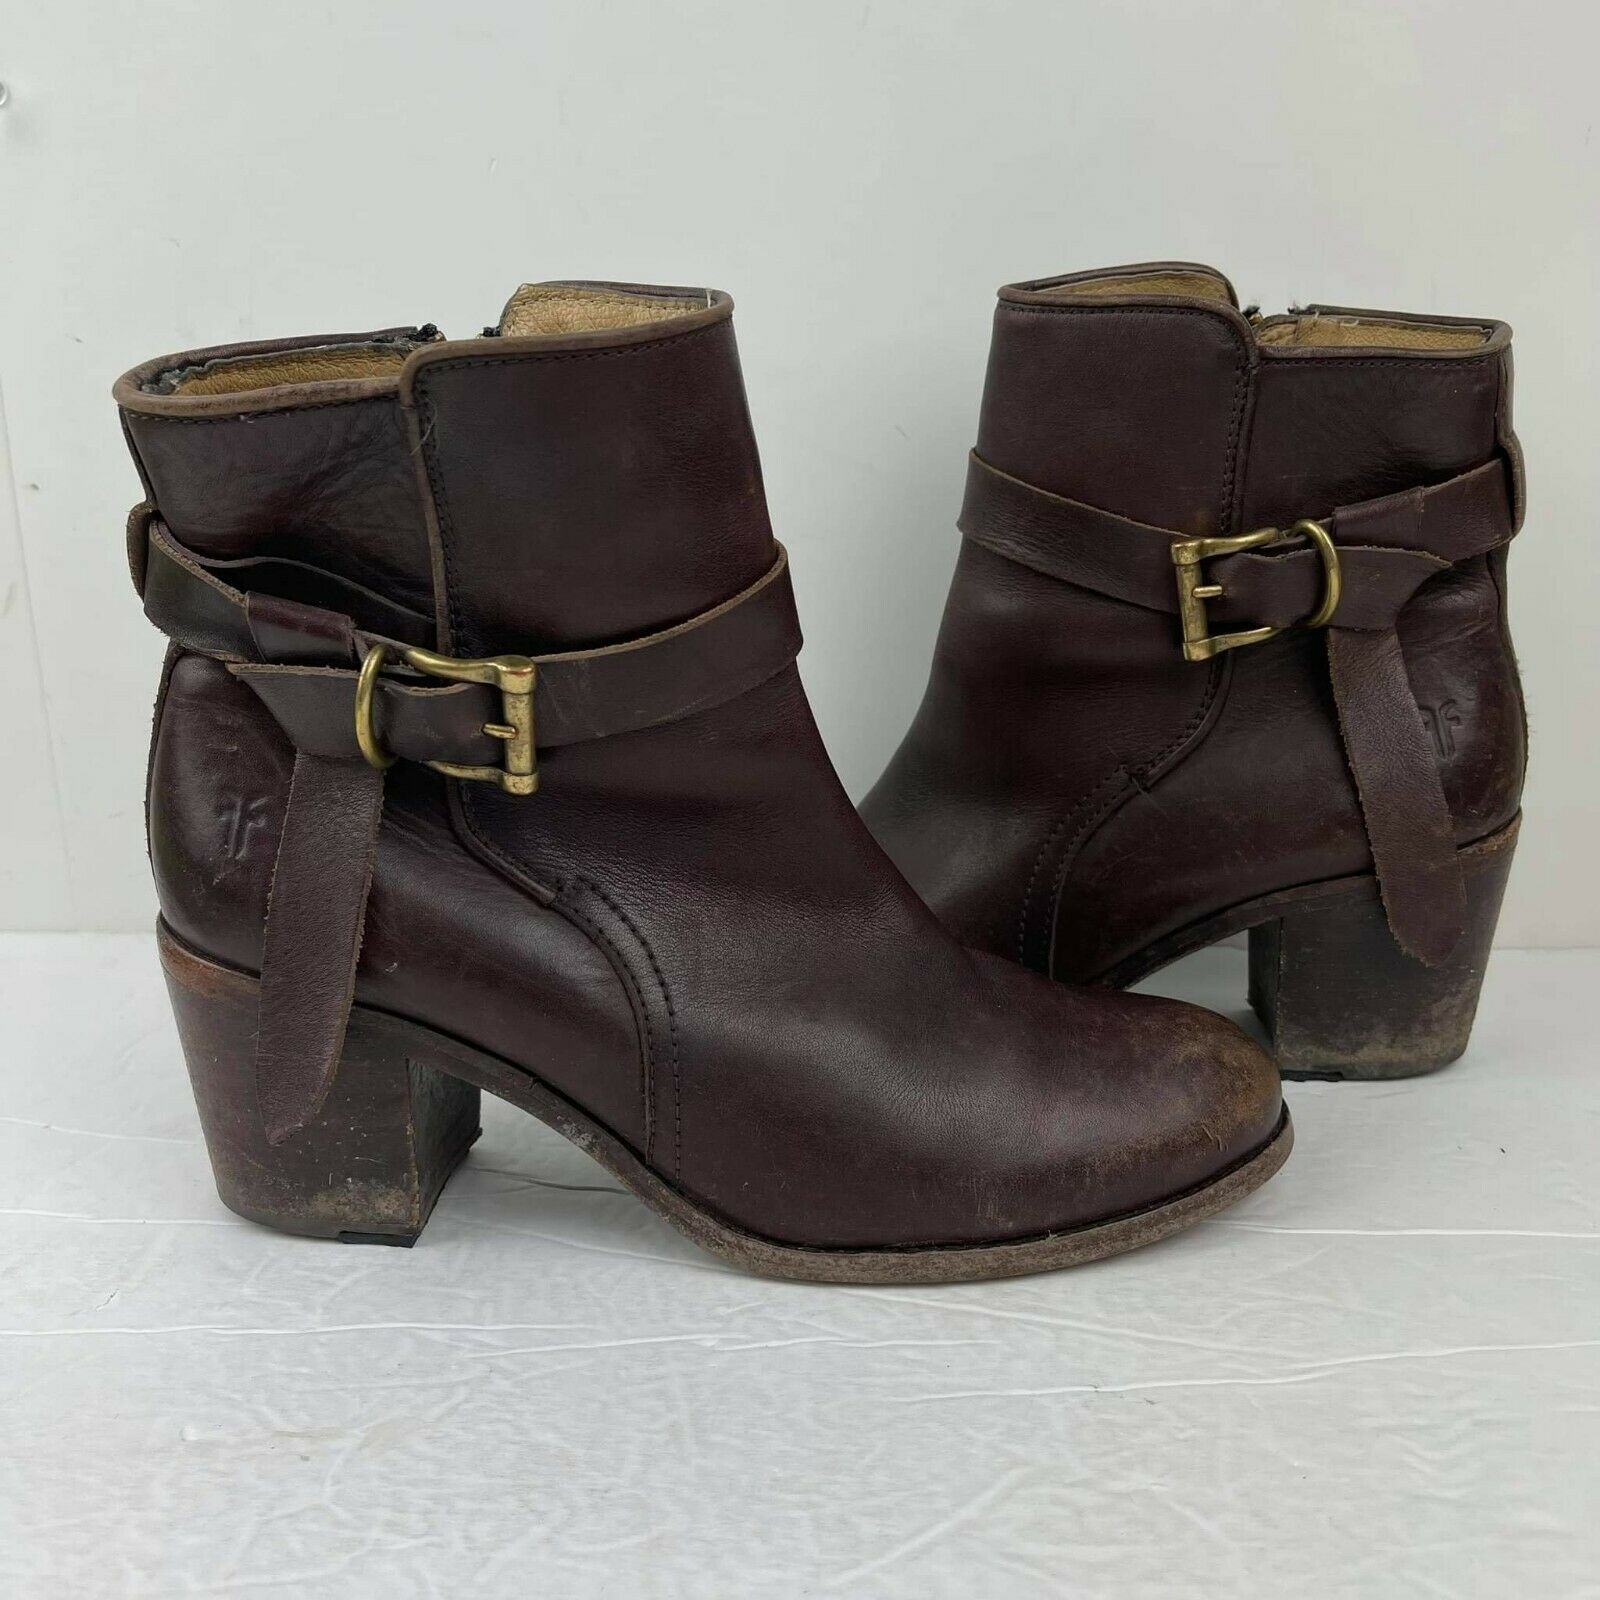 FRYE Women's Melissa Knotted short Boots US 9 B Belted Brown leather Booties